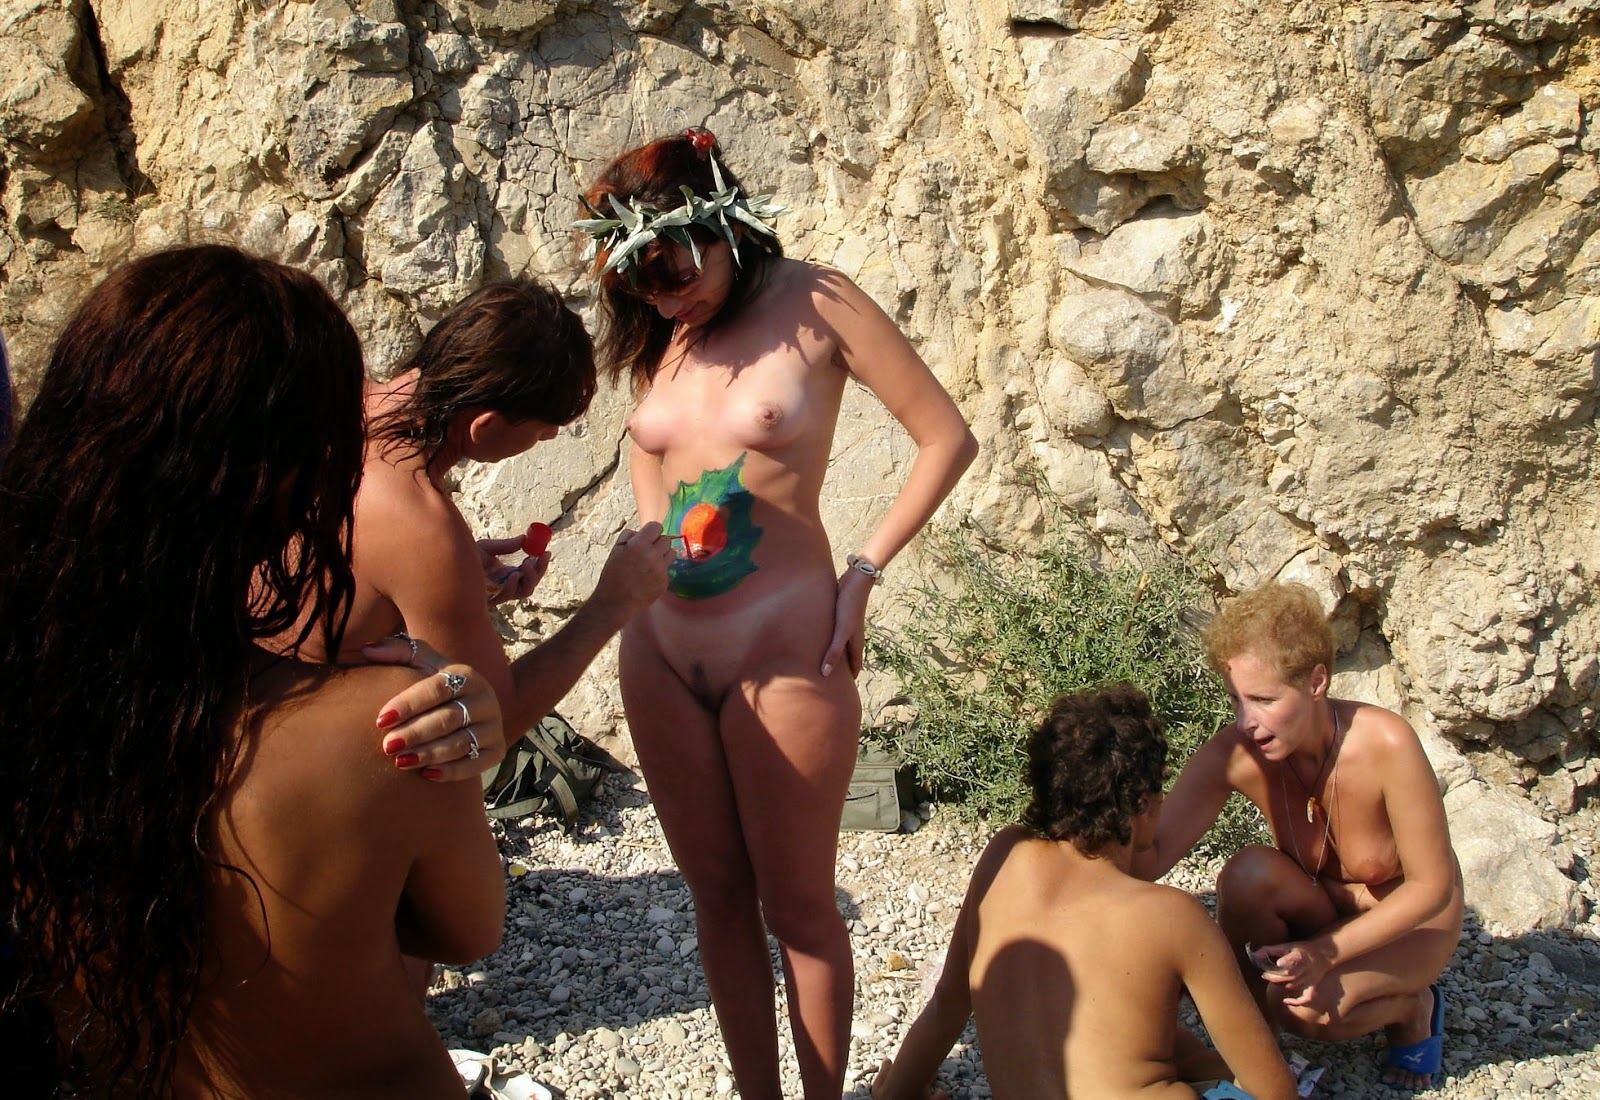 Private her nackt young nudist family blogspot nudist family nut shot!